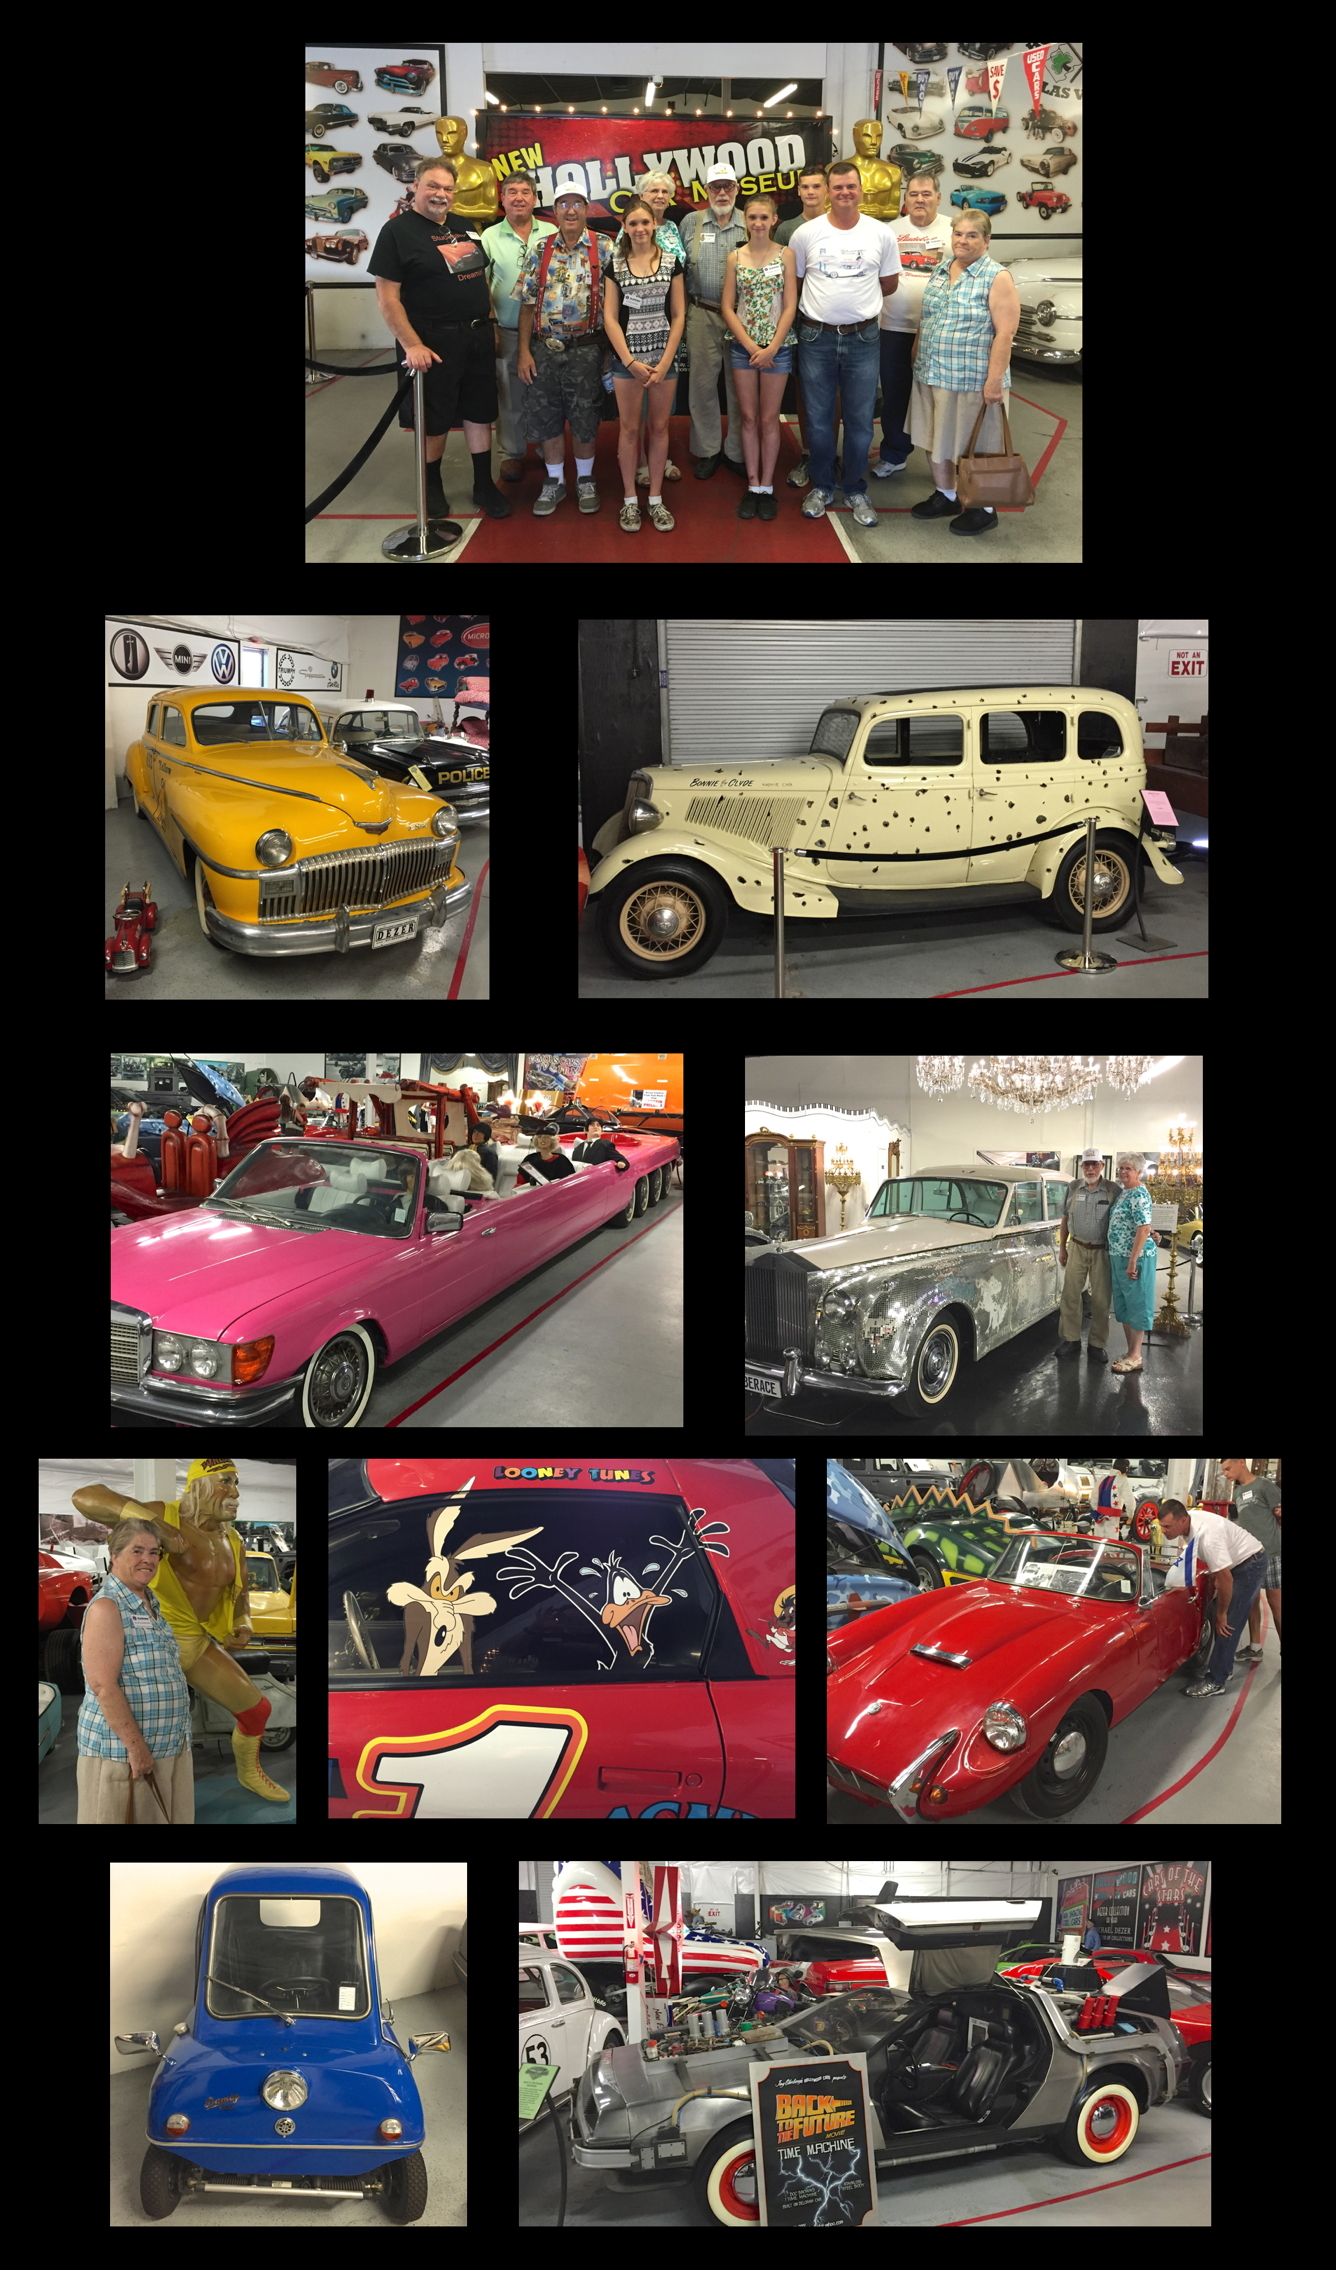 Hollyood Car museum